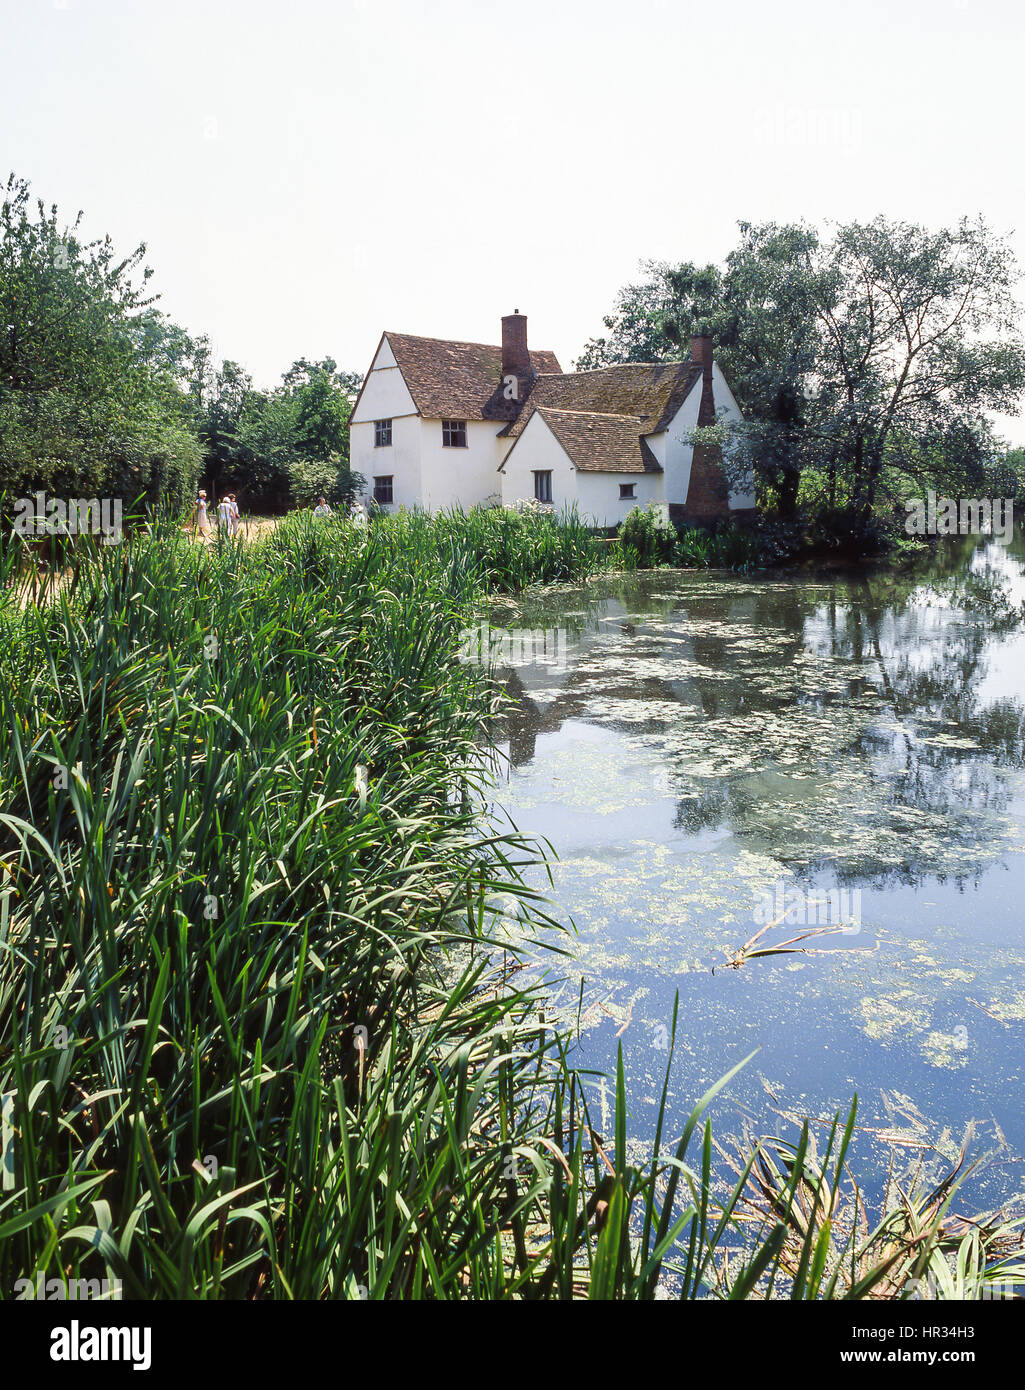 Willy Lott's Cottage, Flatford, East Bergholt, Suffolk, England, United Kingdom - Stock Image